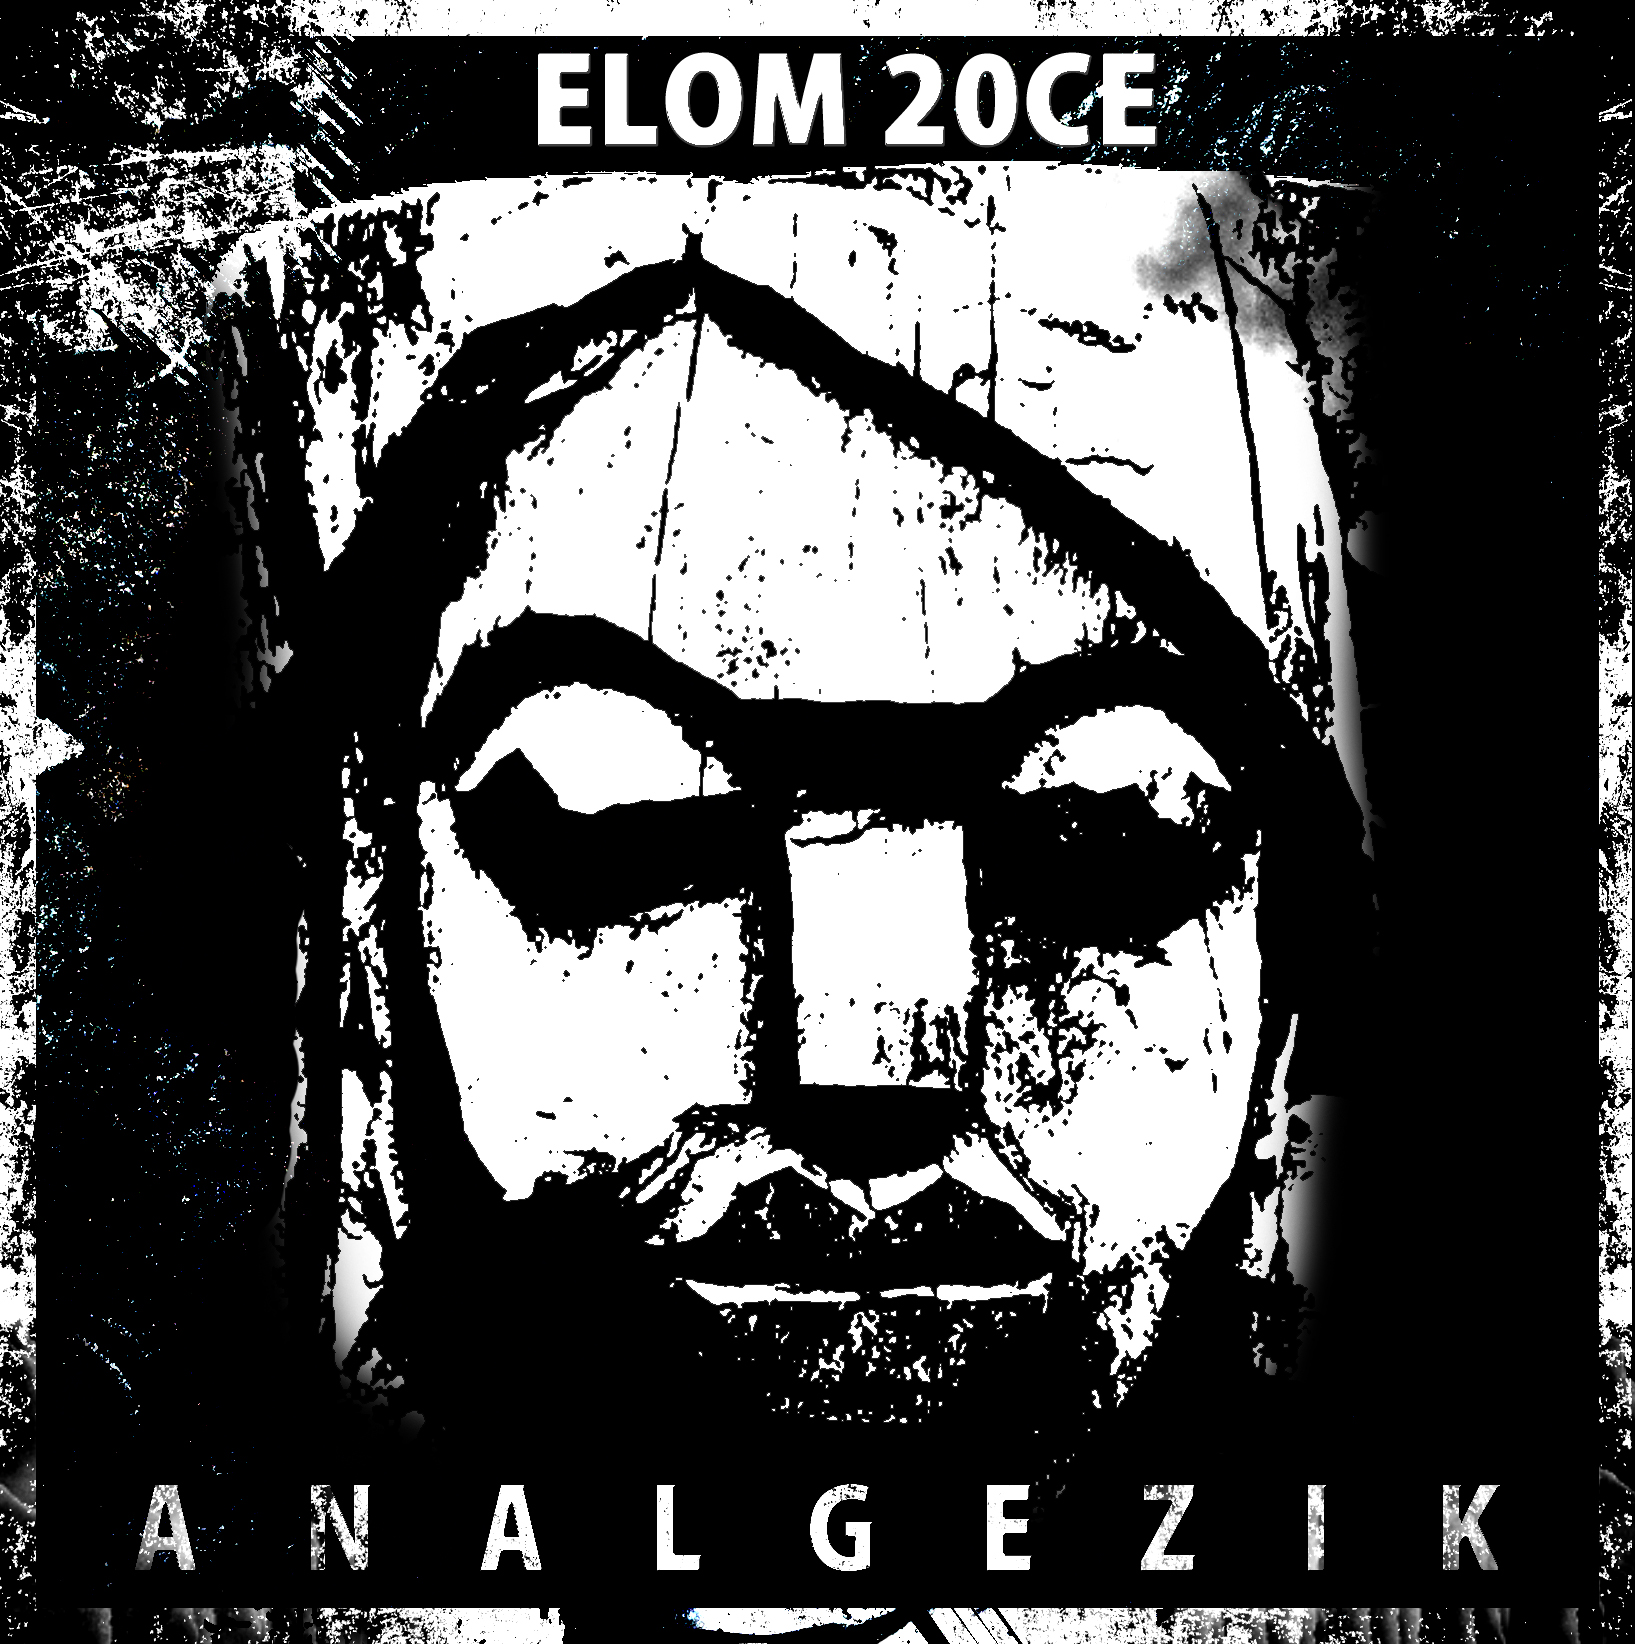 Cover artwork for Analgézik